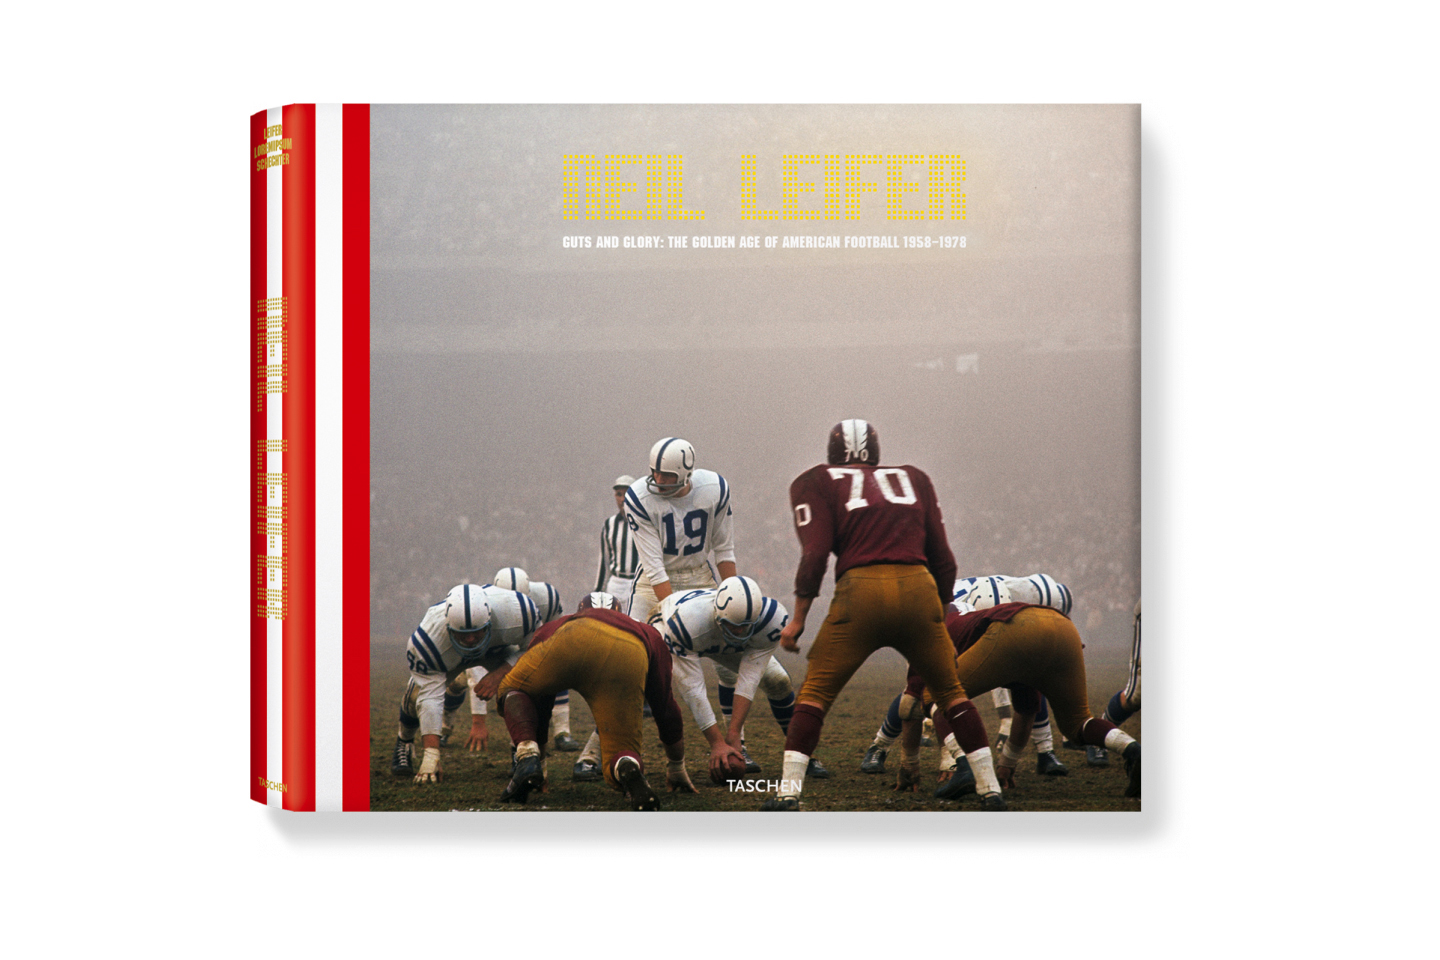 The Golden Age of Football by Neil Leifer